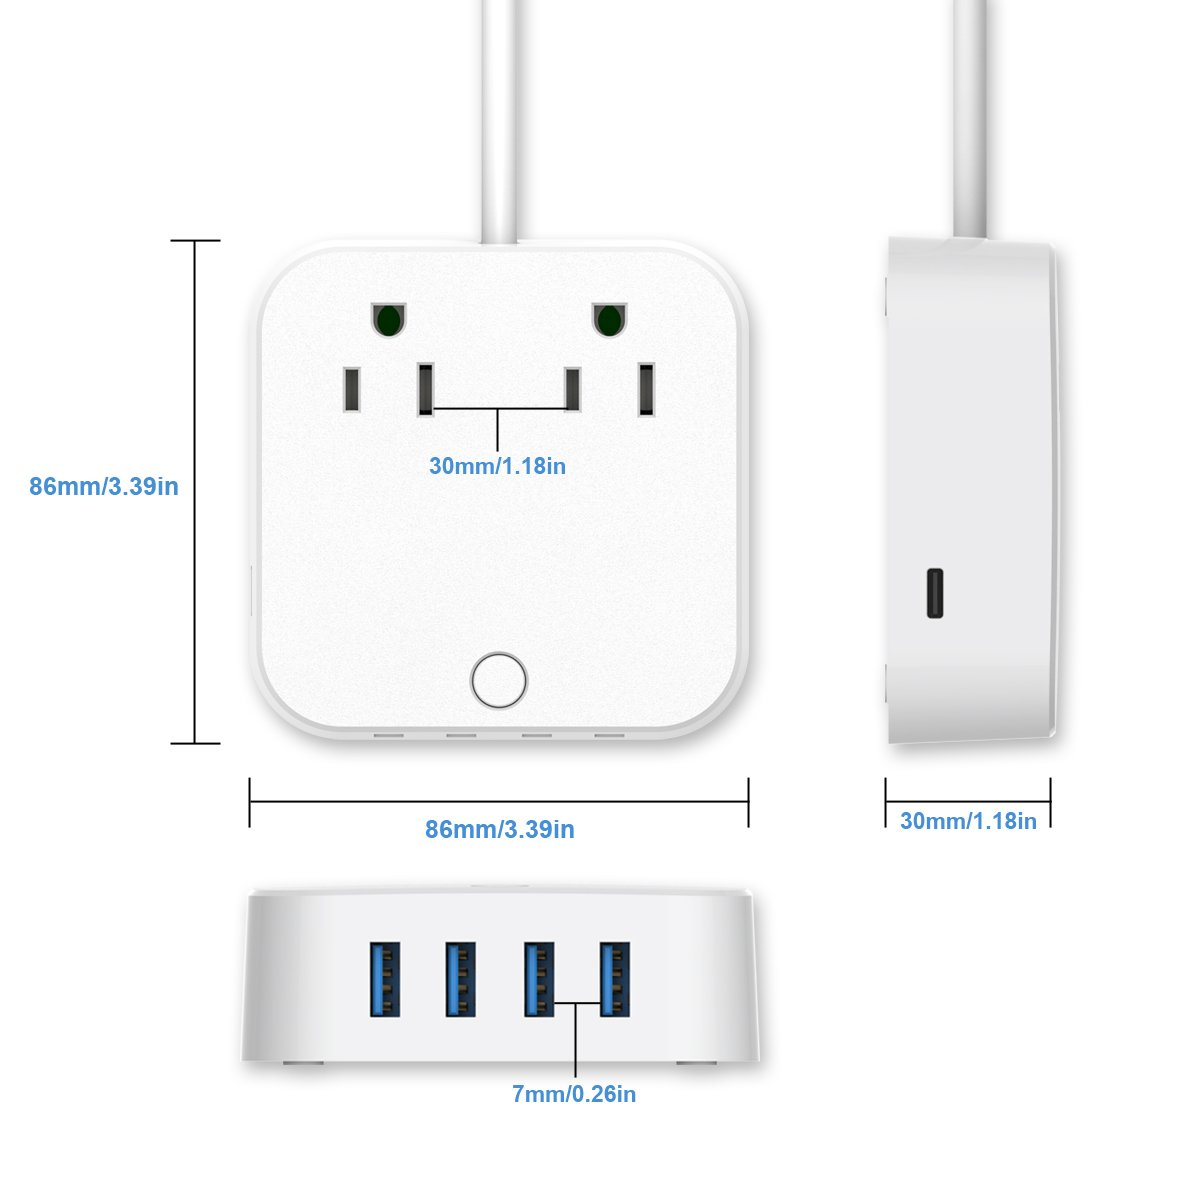 ❤ USB Extension Cord - Surge Protector Power Strip, Type-C Charging Port (5V/3A) & 4 USB Ports (5V/2.4A), Portable Travel Charger Station for iPhone iPad Samsung & Tablets, USB C Not for Laptops by HITRENDS (Image #5)